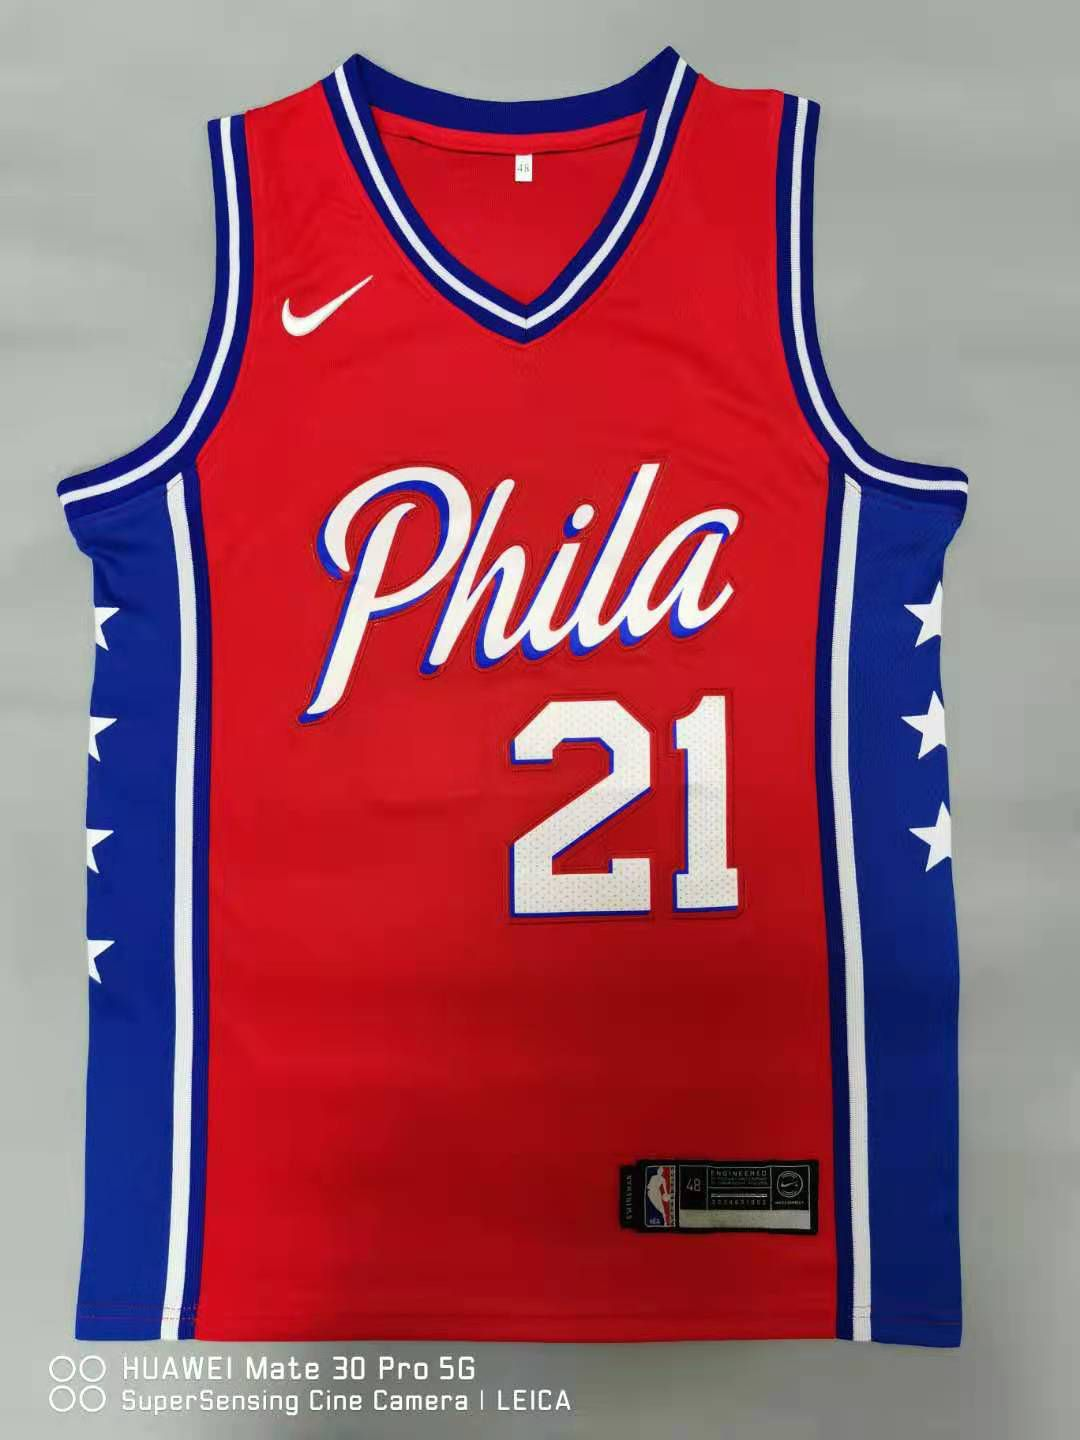 Cheap Men Philadelphia 76ers 21 Embiid Red 2021 Nike Game NBA Jersey